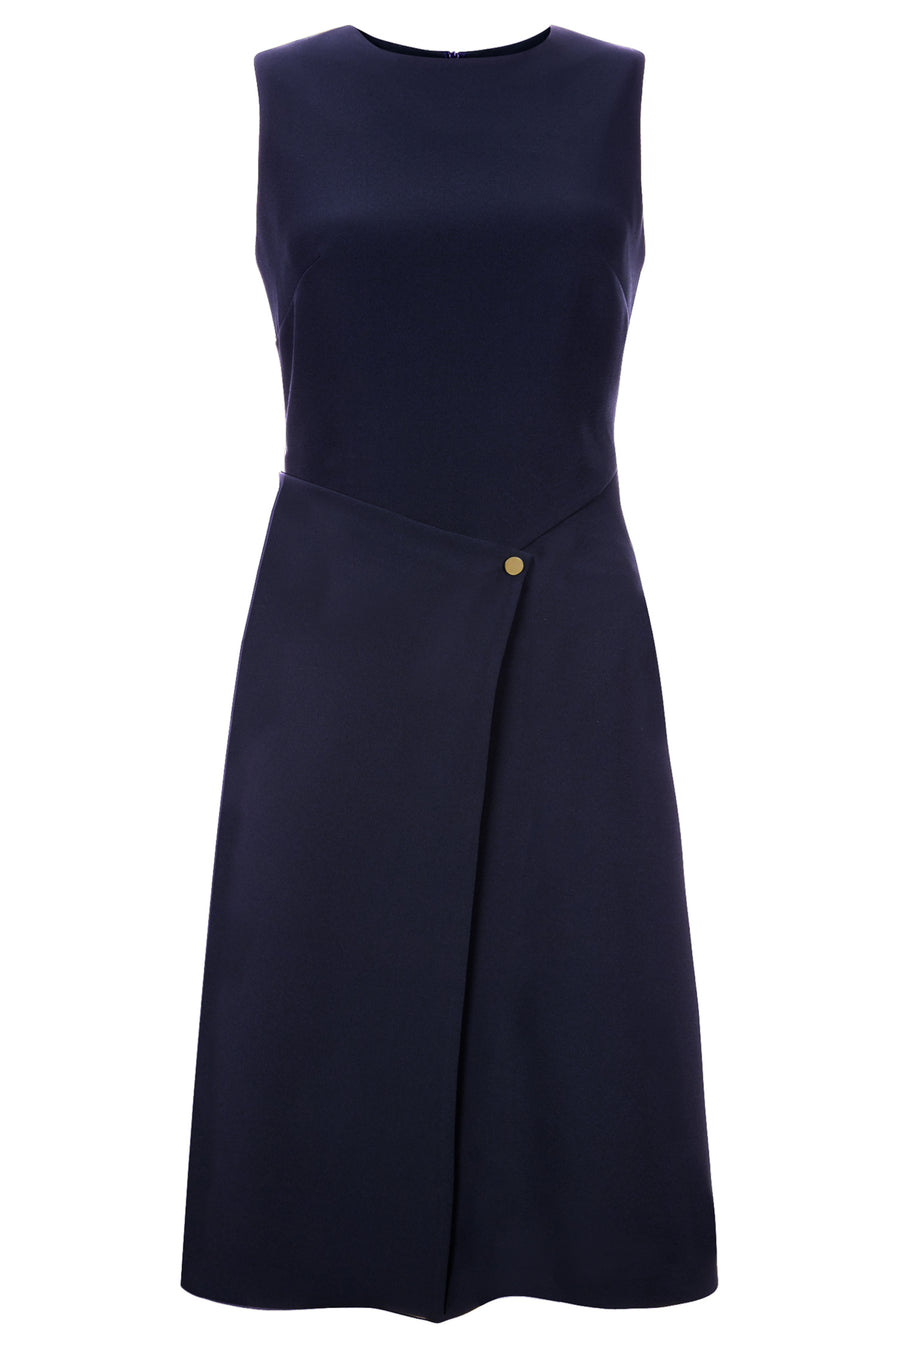 Bayswater Navy Dress